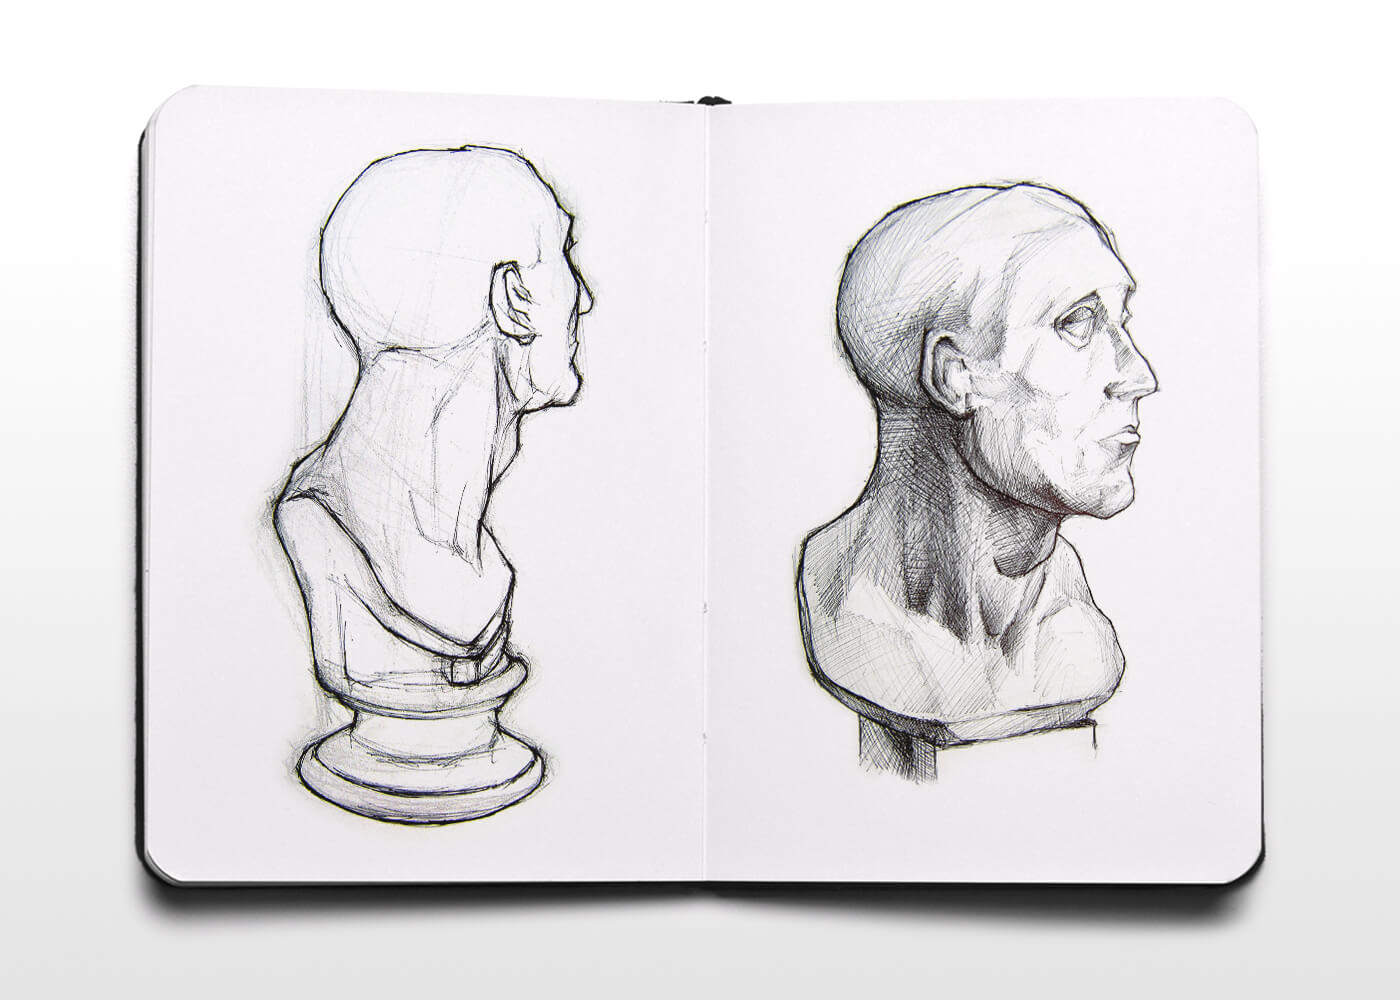 Boceto De Un Busto Escultórico - Sketch Of A Sculptural Head